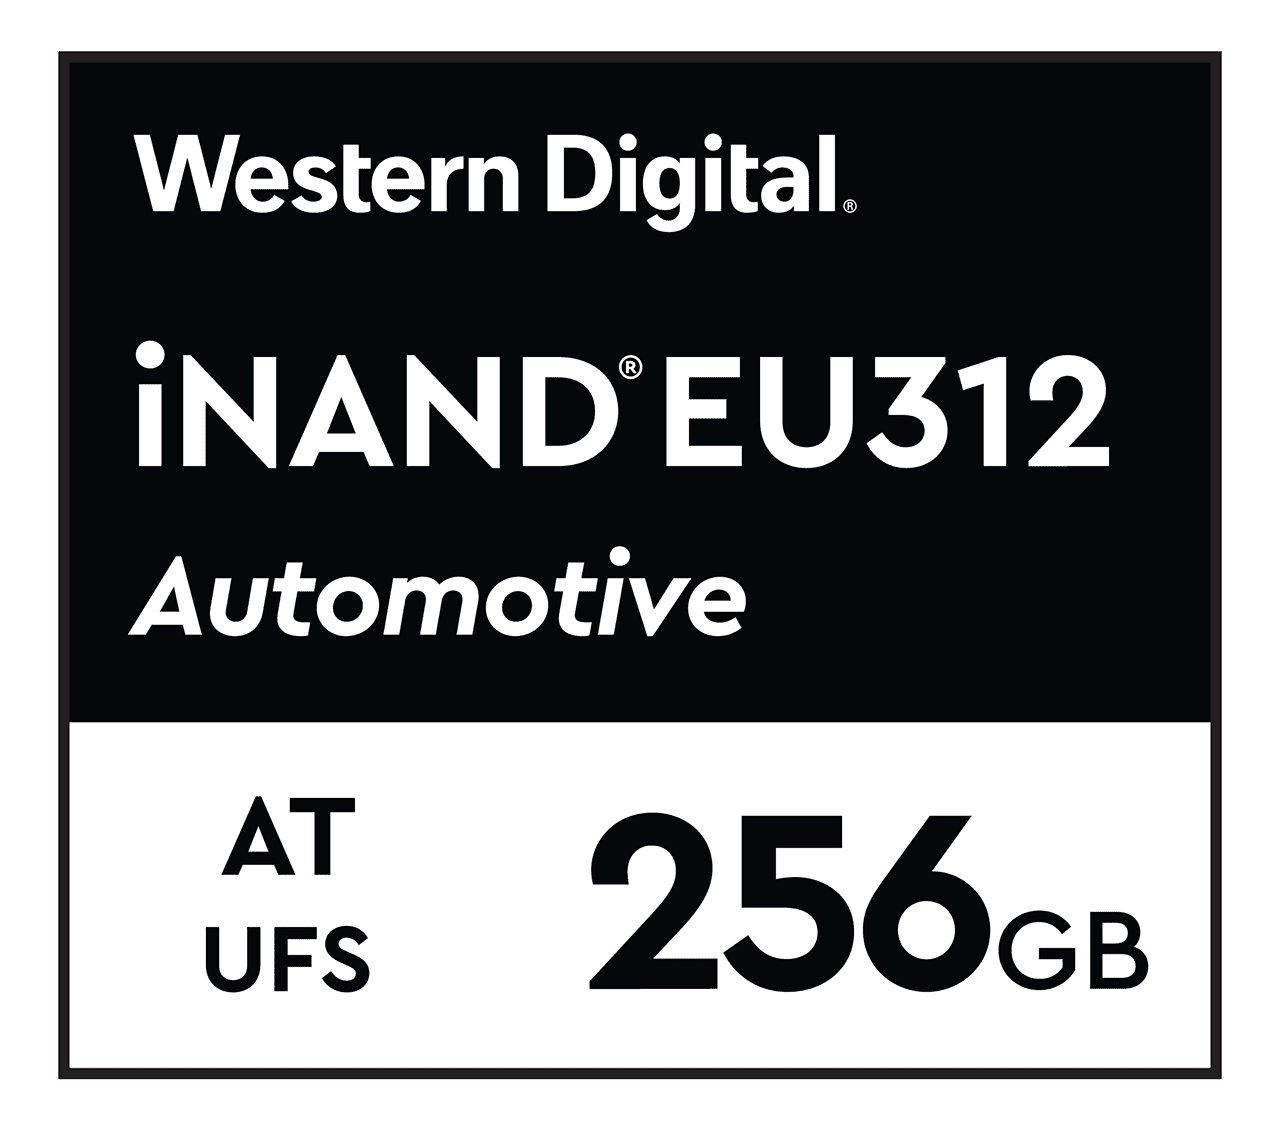 iNAND_EU812_ATeUFS_256GB